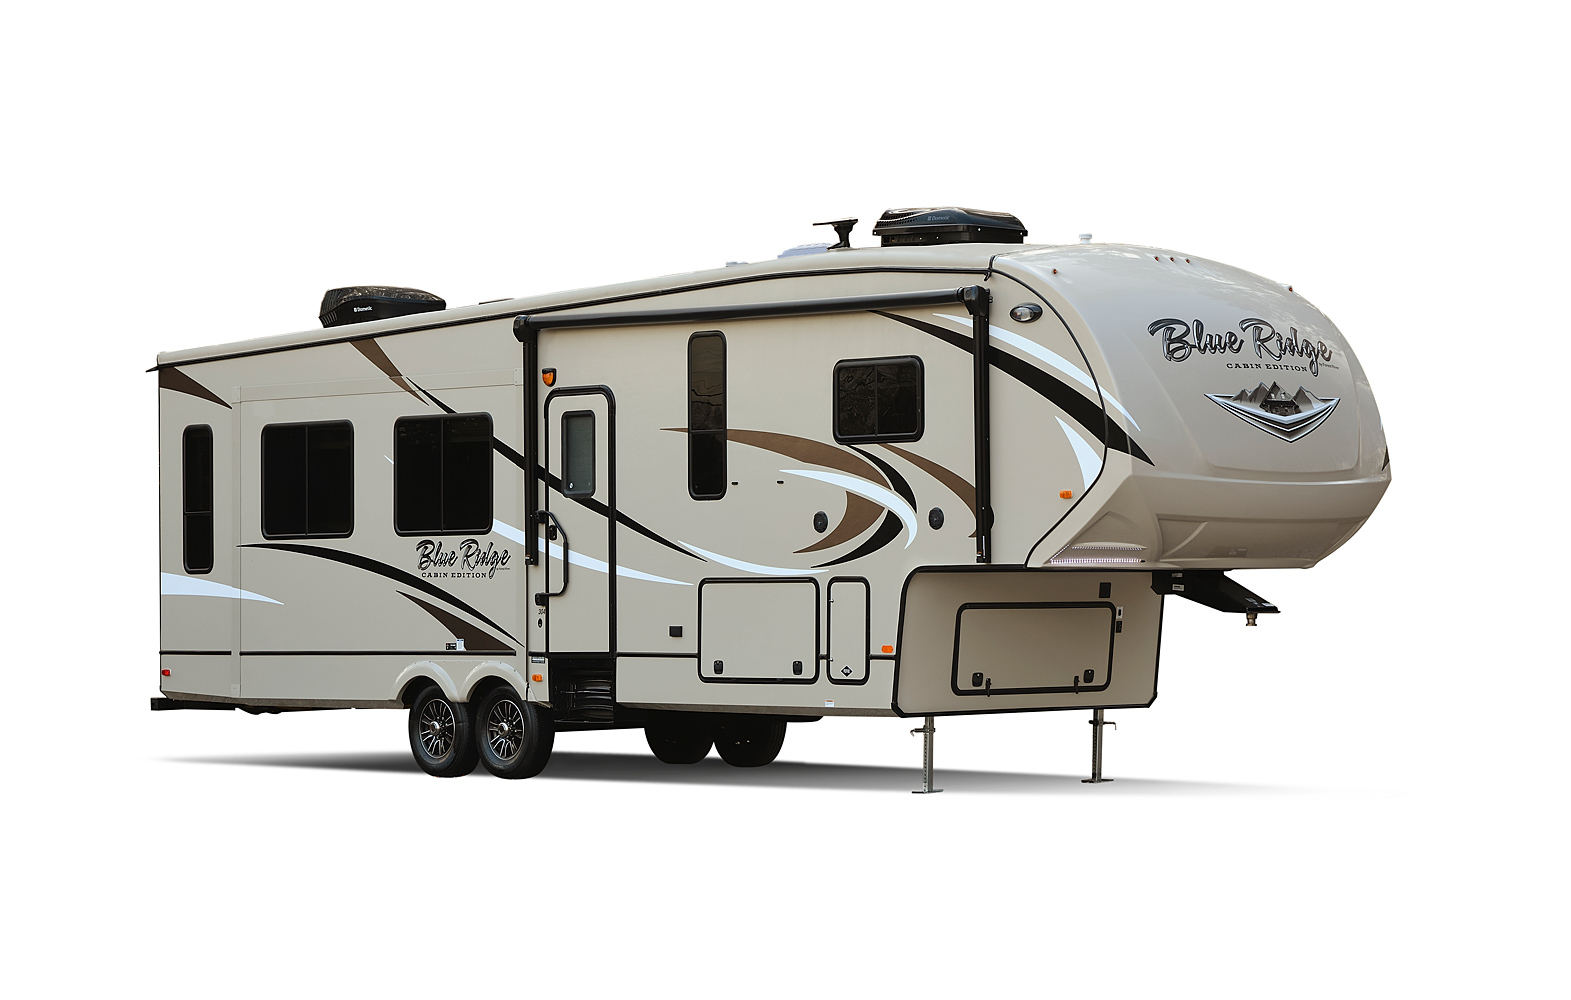 Blue Ridge Cabin Edition Fifth Wheels By Forest River Rv Typical Trailer Wiring Diagram In Addition Battery Interior And Exterior